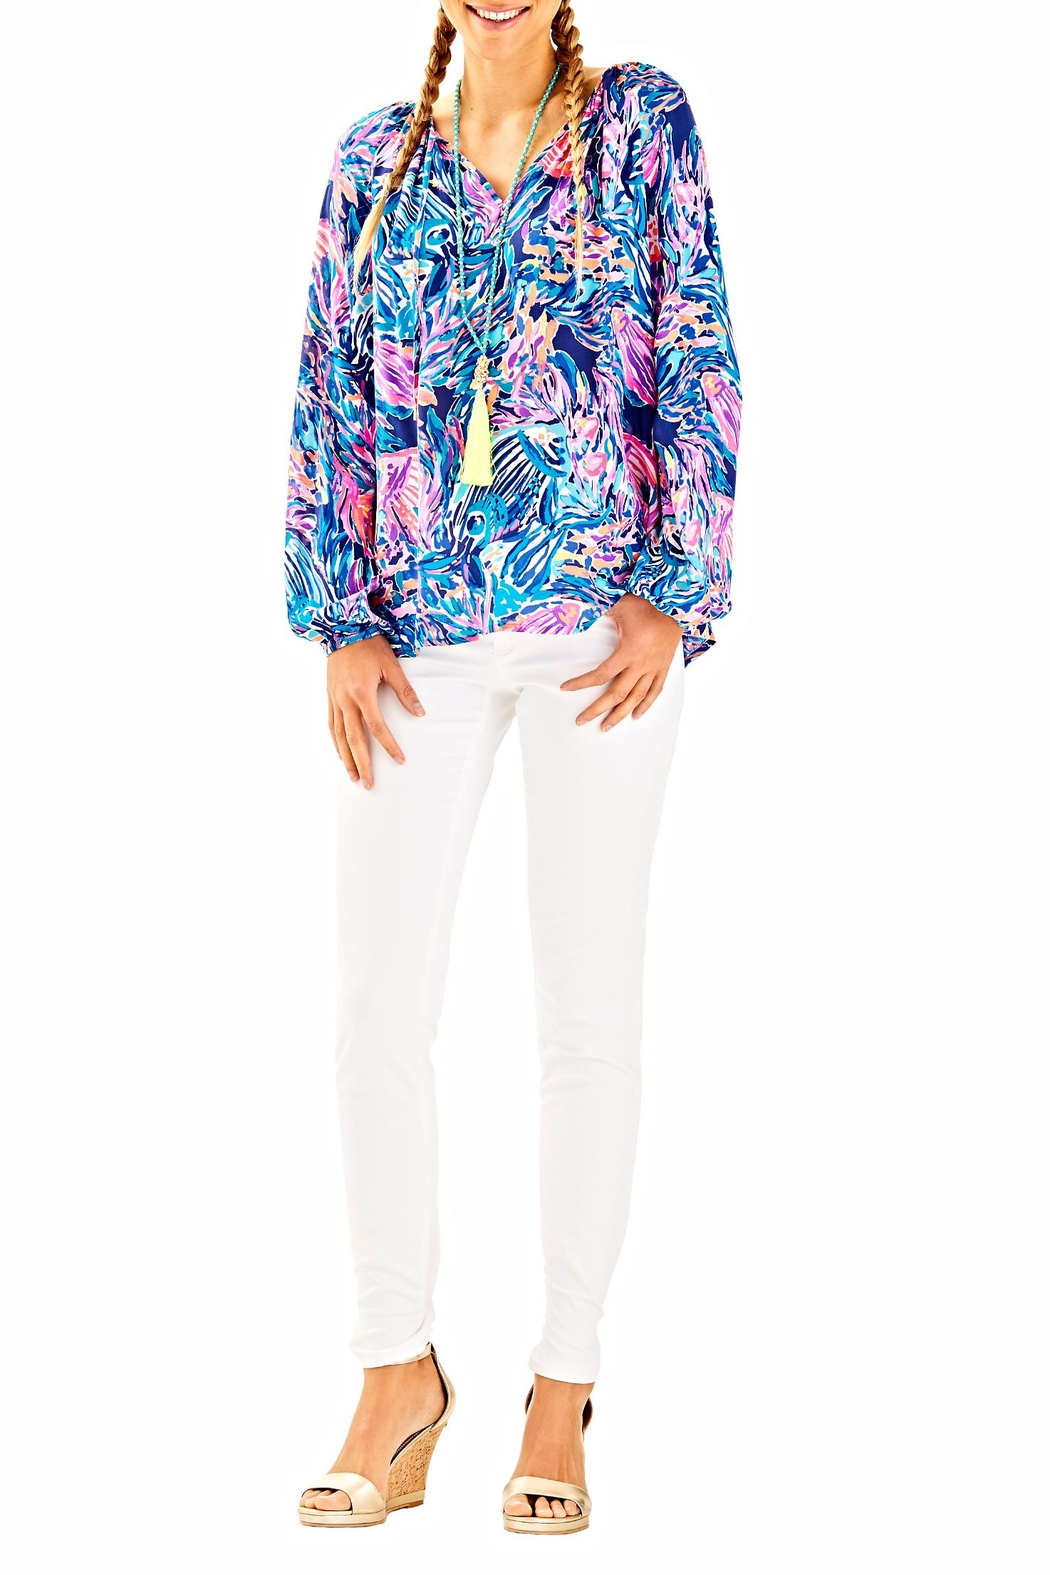 Lilly Pulitzer Willa Tunic Top - Main Image